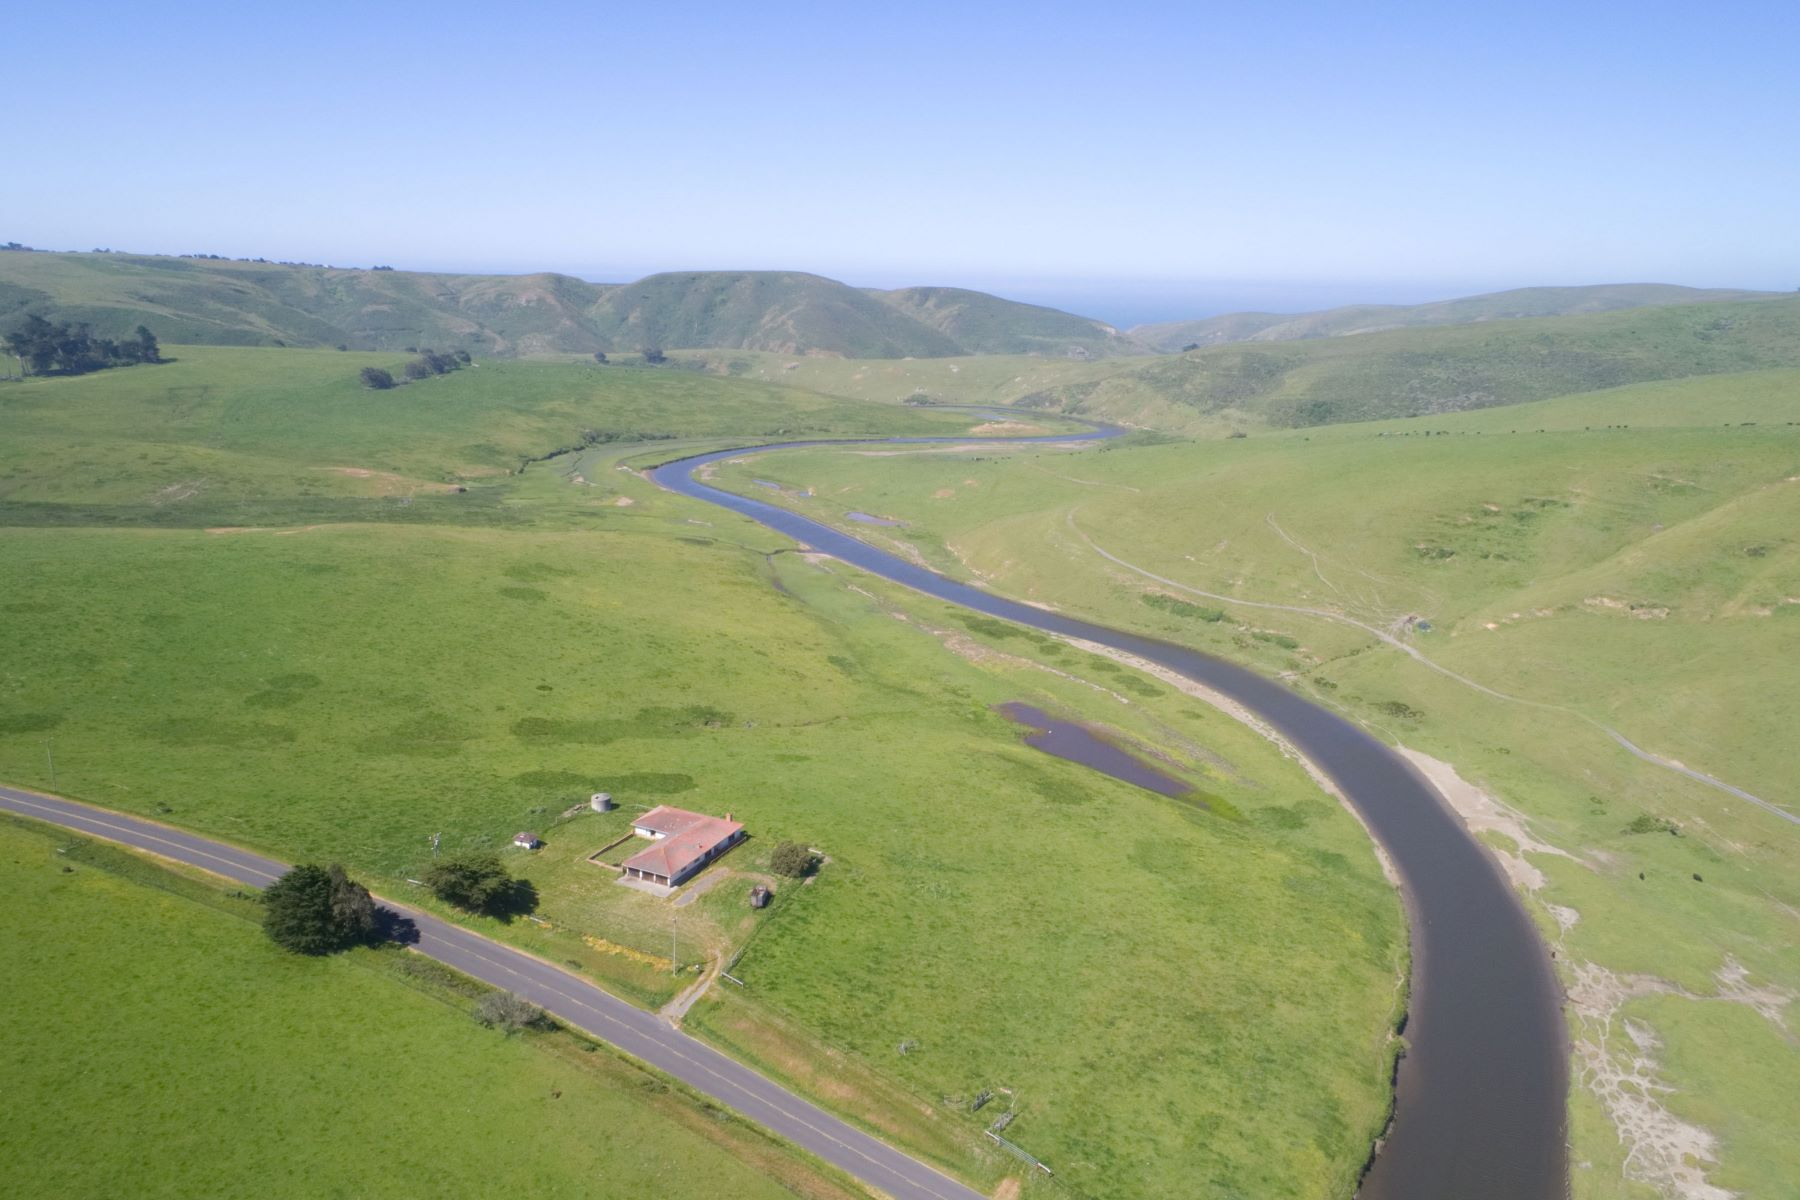 Single Family Homes for Active at 5 Bed, 3 Bath on 47 River-Front Acres 4600 Valley Ford Franklin School Road Petaluma, California 94953 United States